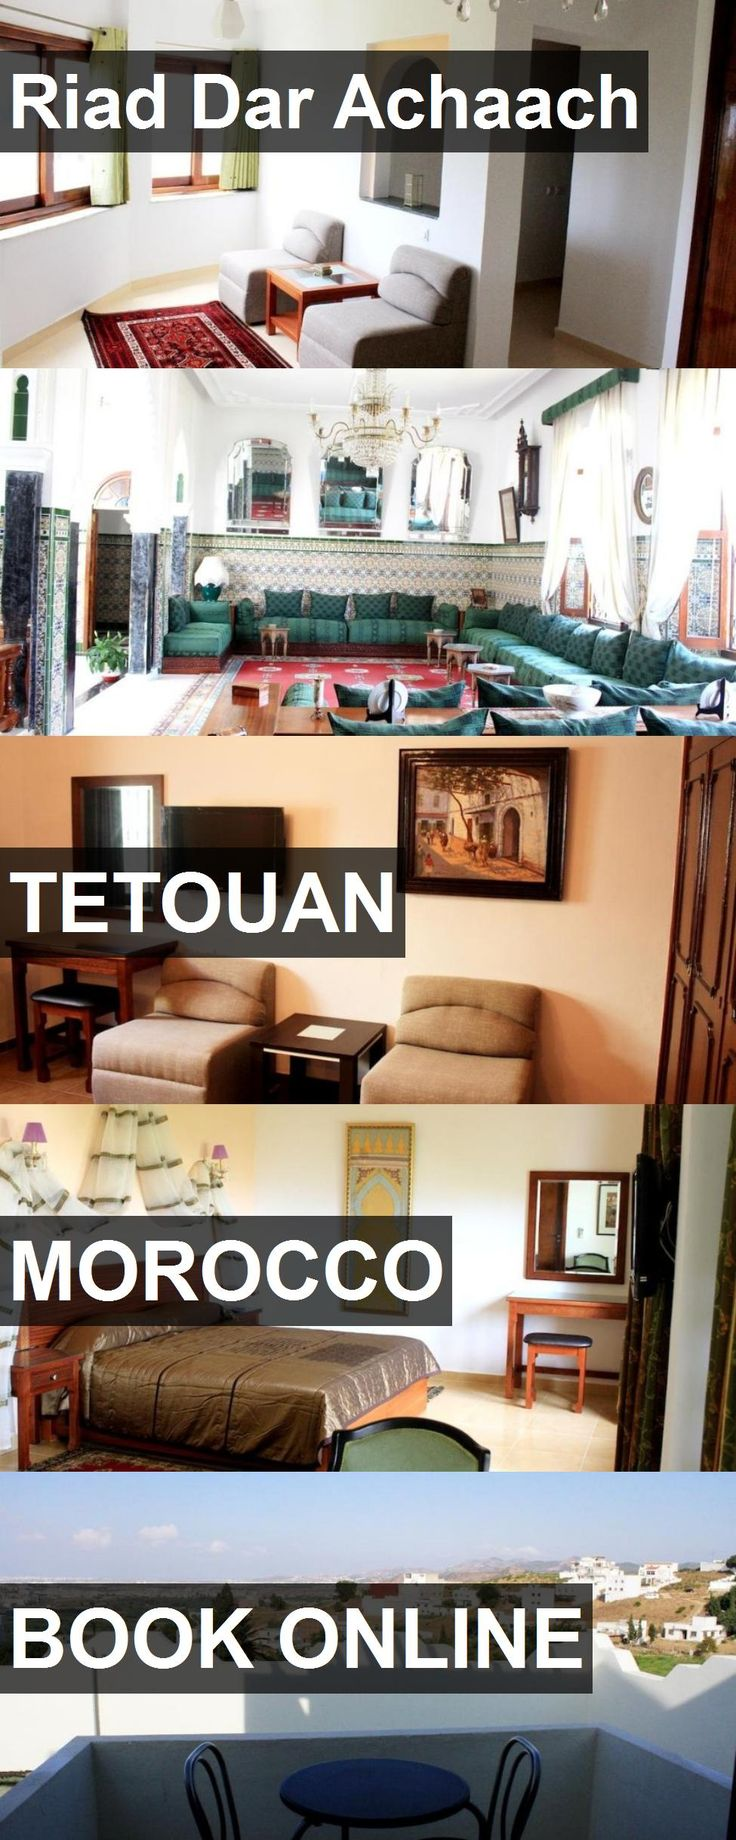 Hotel Riad Dar Achaach in Tetouan, Morocco. For more information, photos, reviews and best prices please follow the link. #Morocco #Tetouan #travel #vacation #hotel